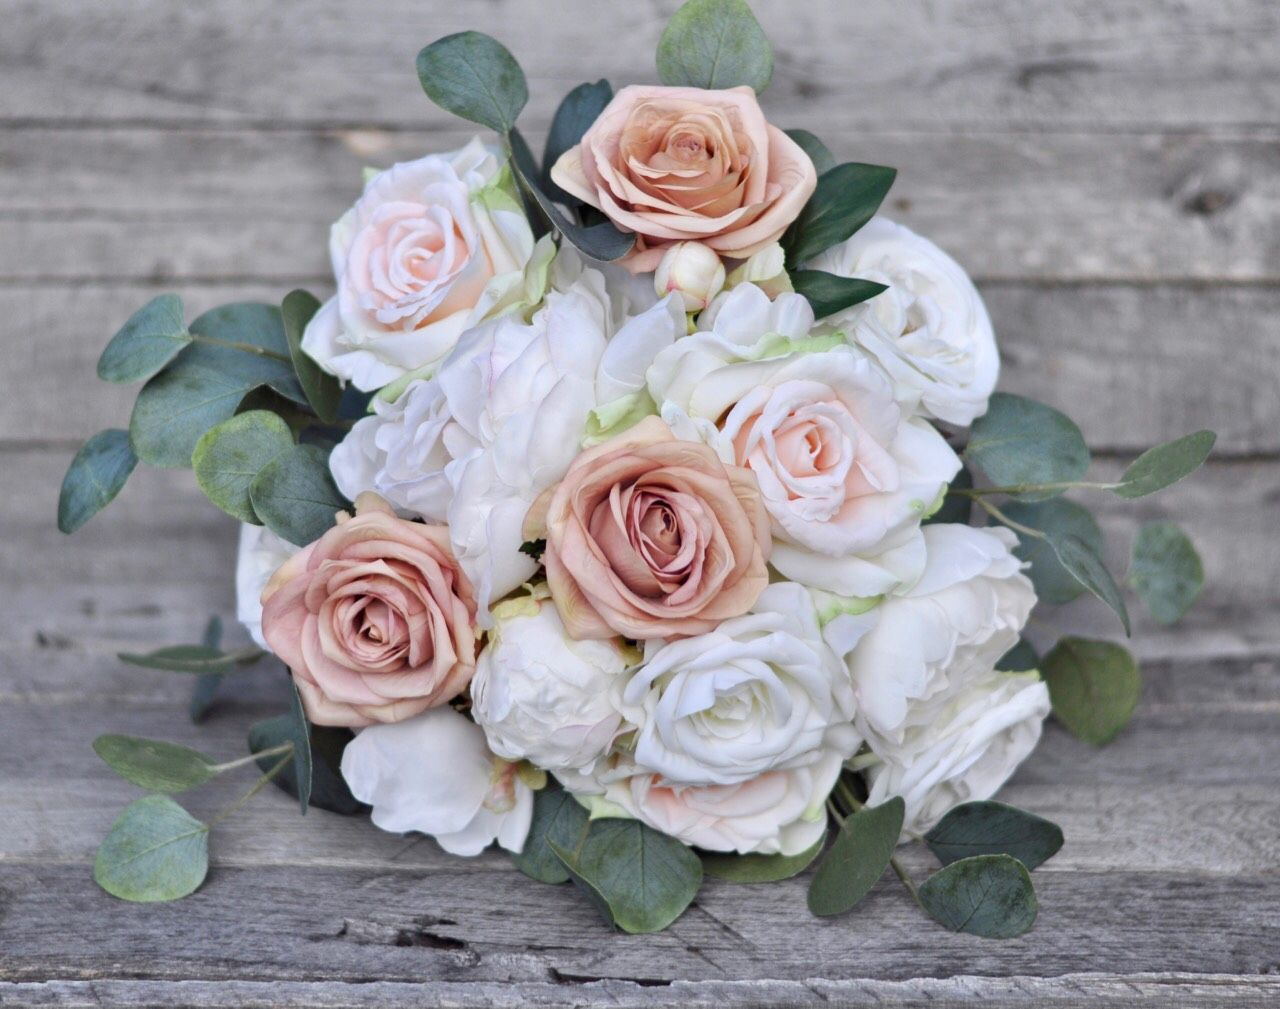 Blush Rose Bouquets Are Always In Season Forever Wedding Flowers